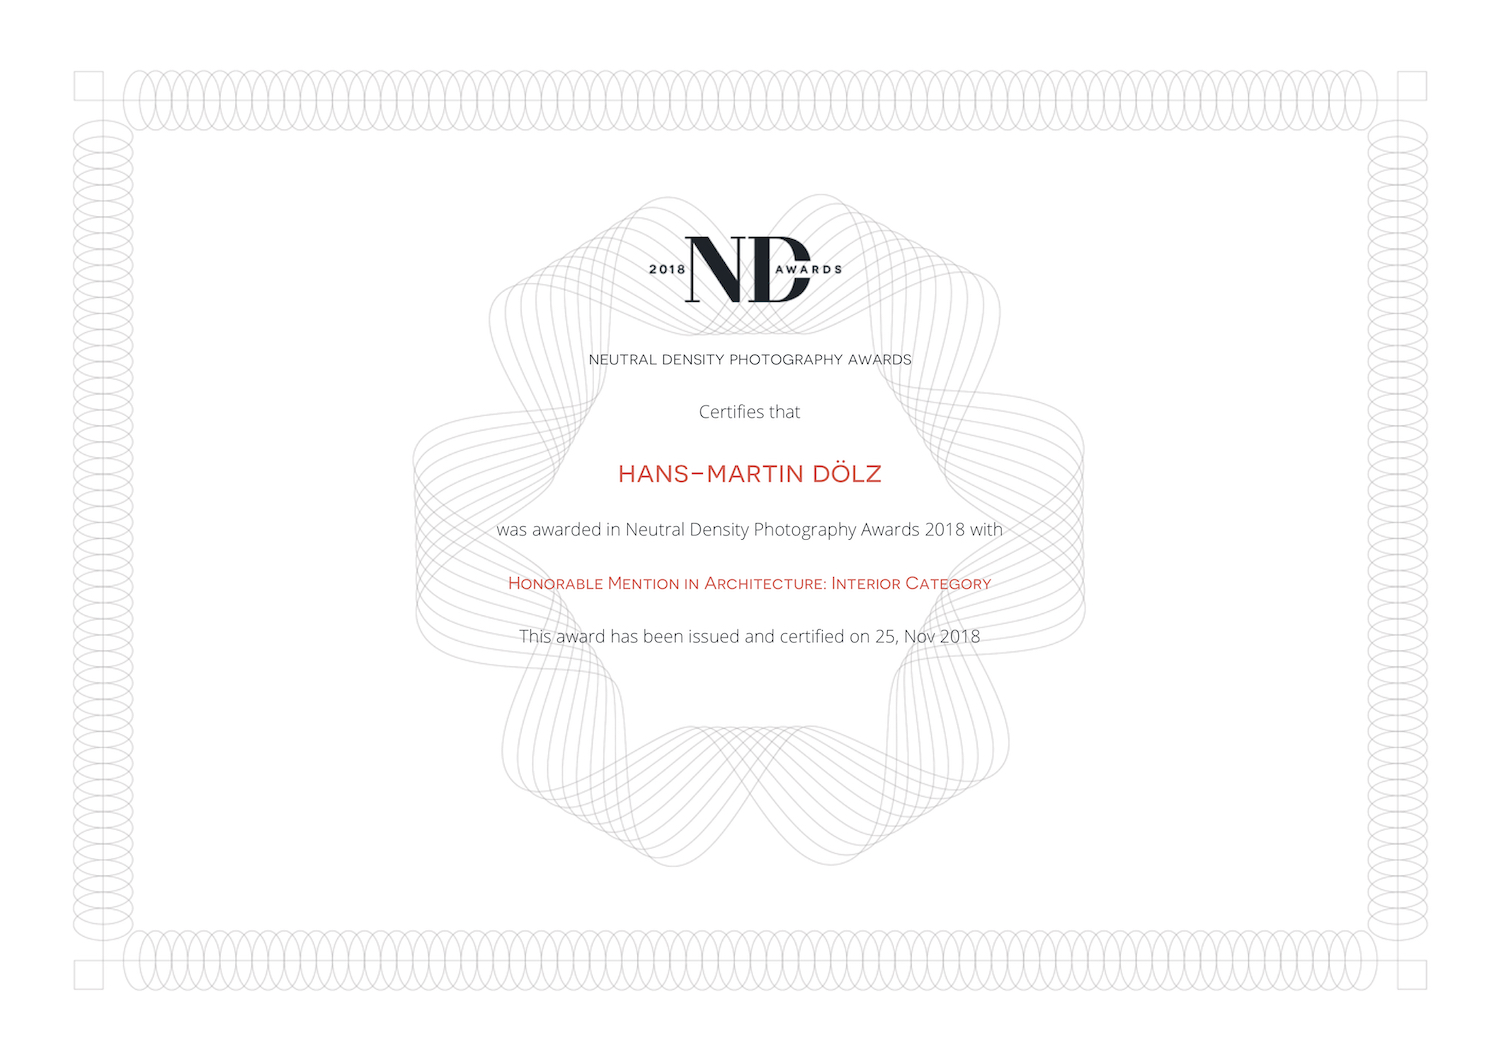 nd awards_certificate_Hans-Martin Doelz-2018